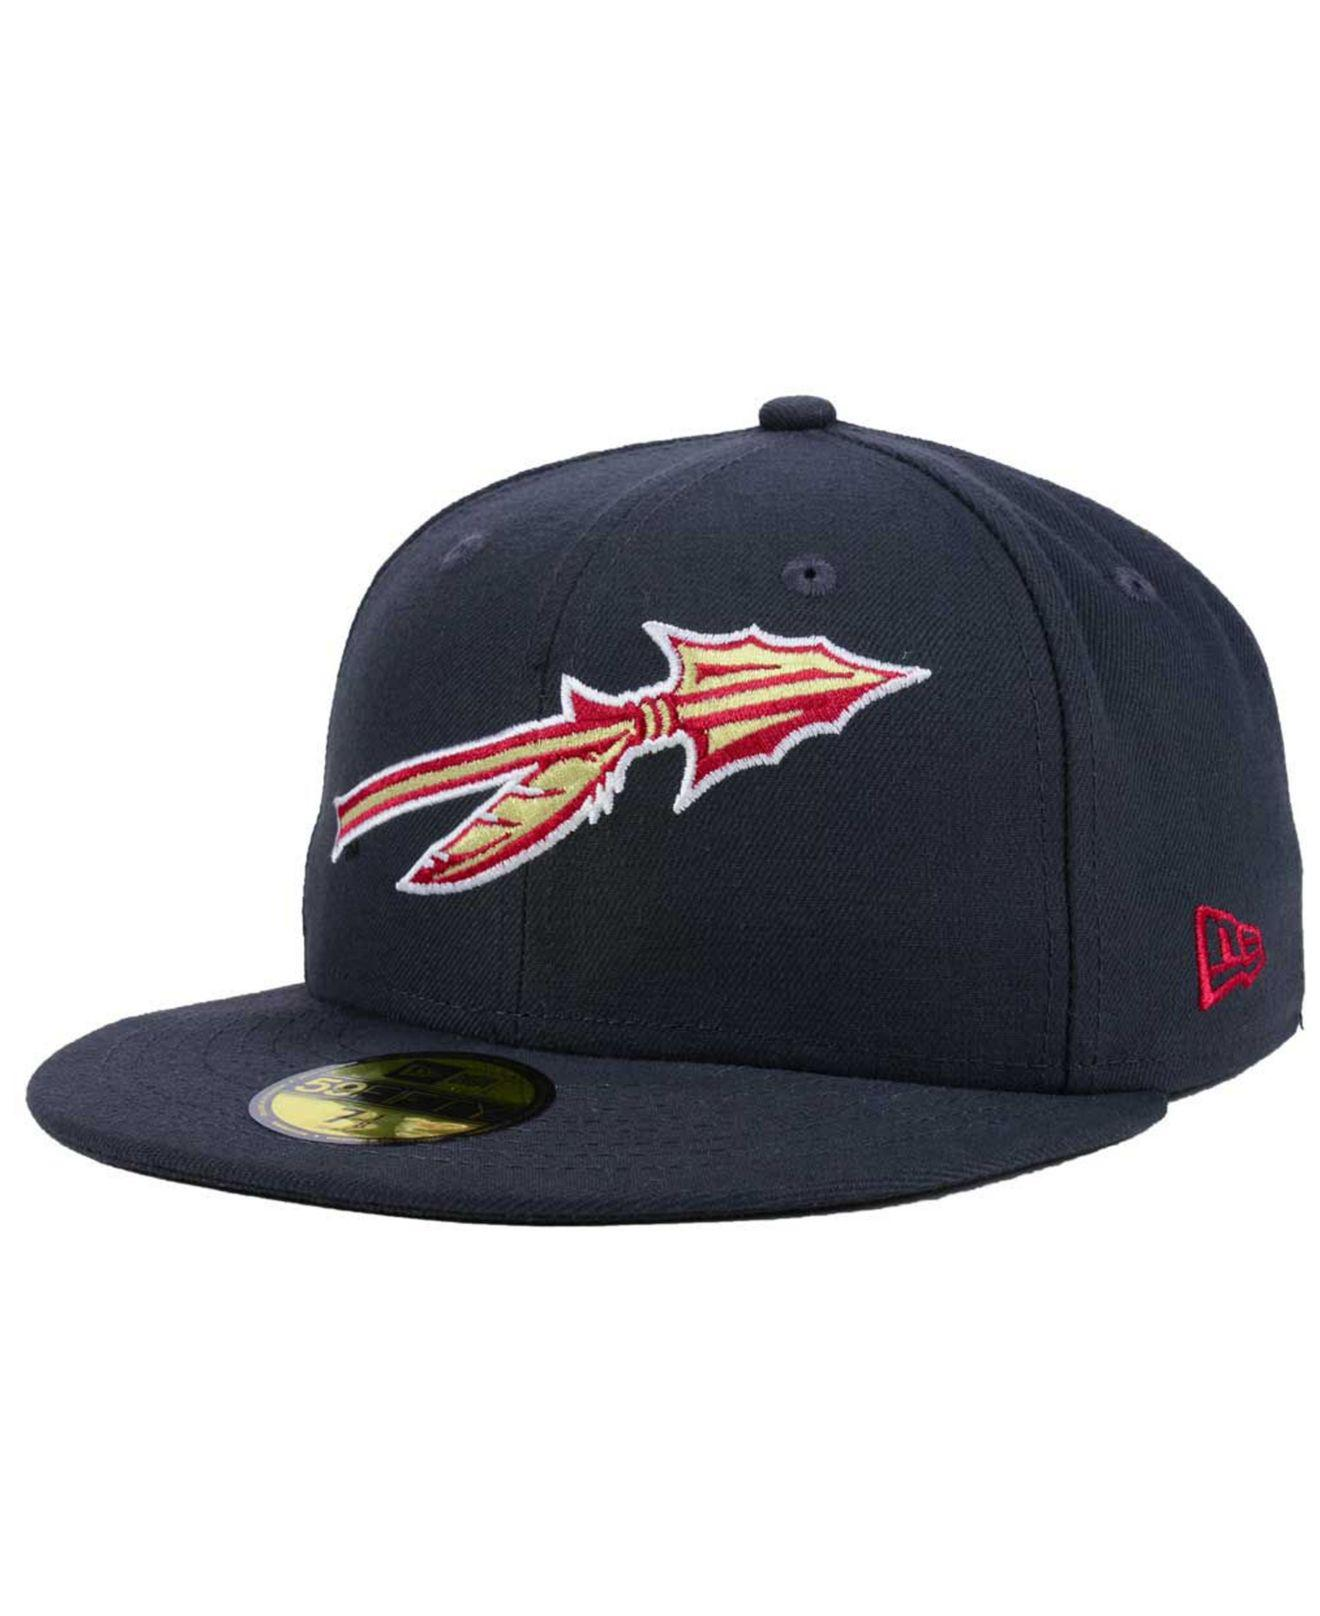 15aaea5ede4 Lyst - KTZ Florida State Seminoles Ac 59fifty Fitted Cap in Blue for Men